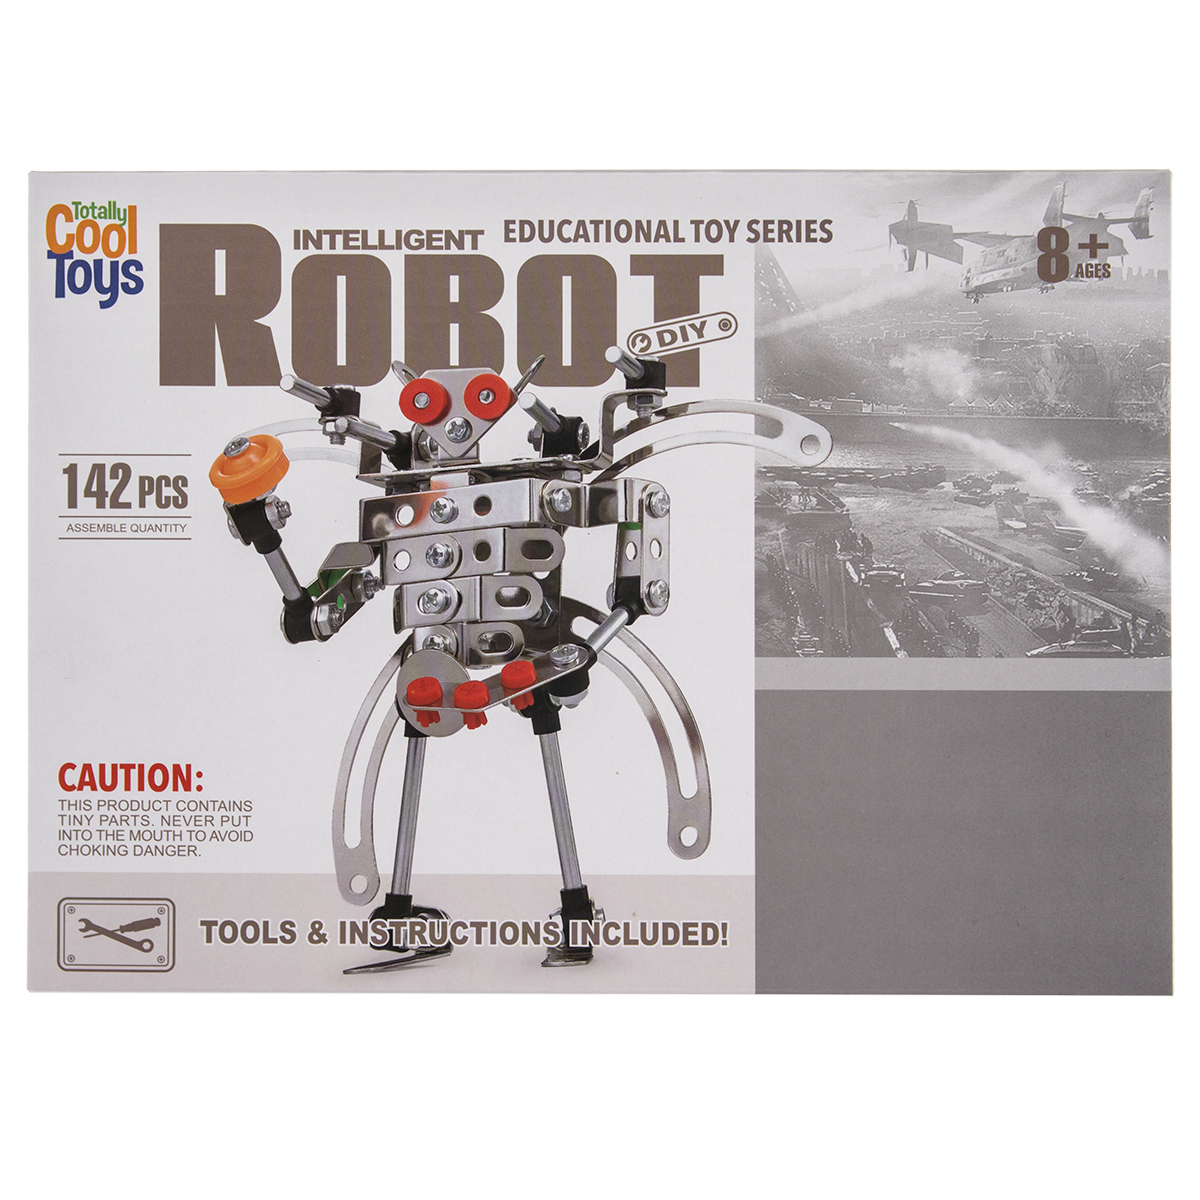 Totally Cool Toys (142pc) Metal Alloy Robot Building Set Kids Educational Construction... by Totally Cool Toys